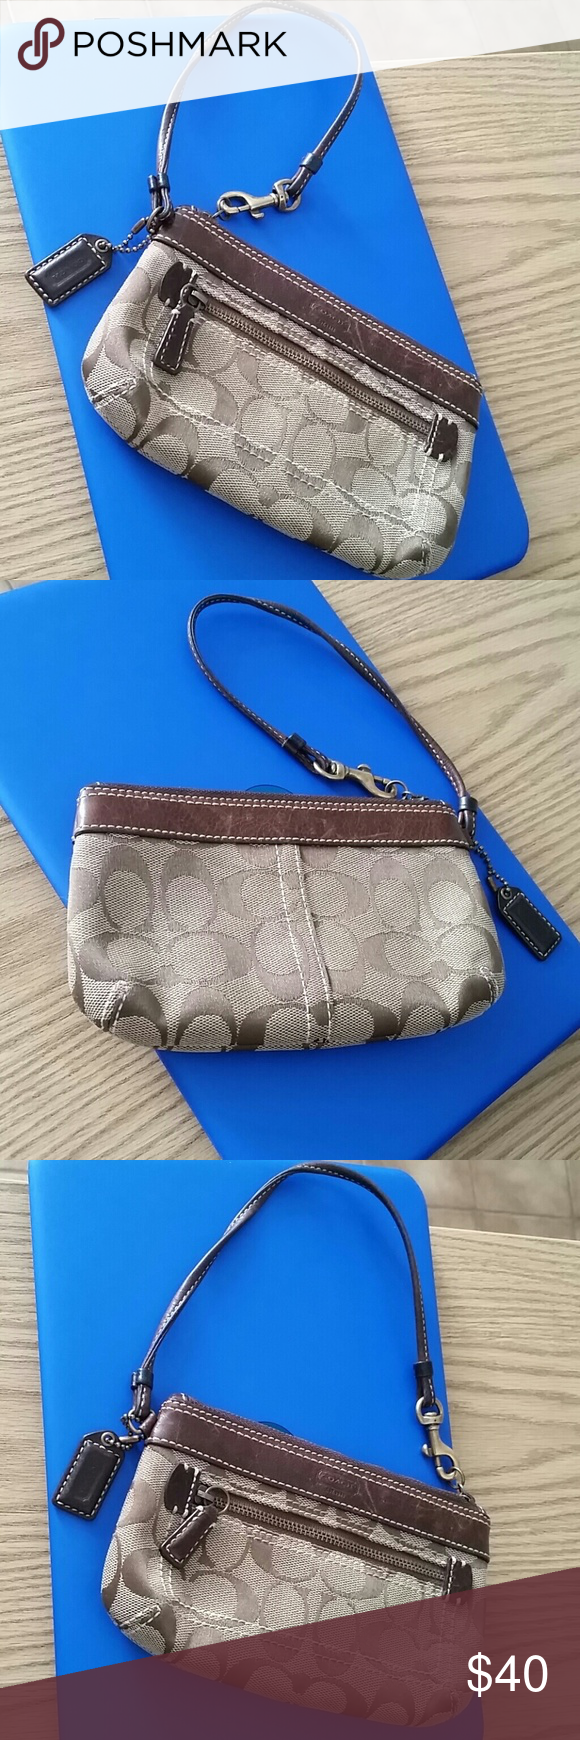 Coach Very cute wristlet in great condition. Big enough for most cellphones and has extra zippered compartment on the outside. Coach Bags Clutches & Wristlets